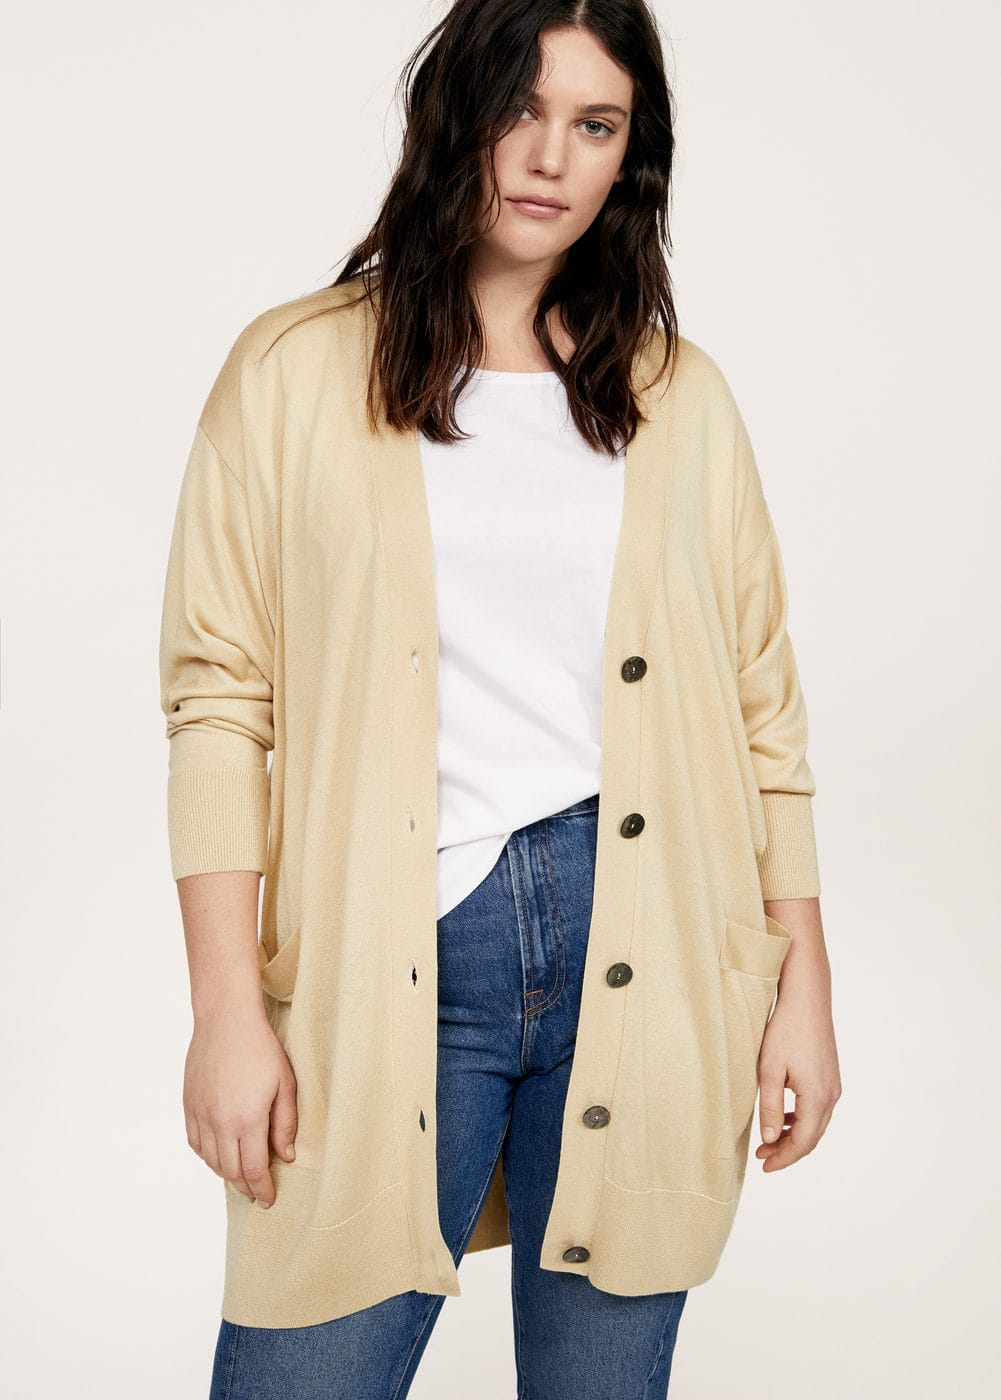 Buttoned long cardigan | VIOLETA BY MANGO